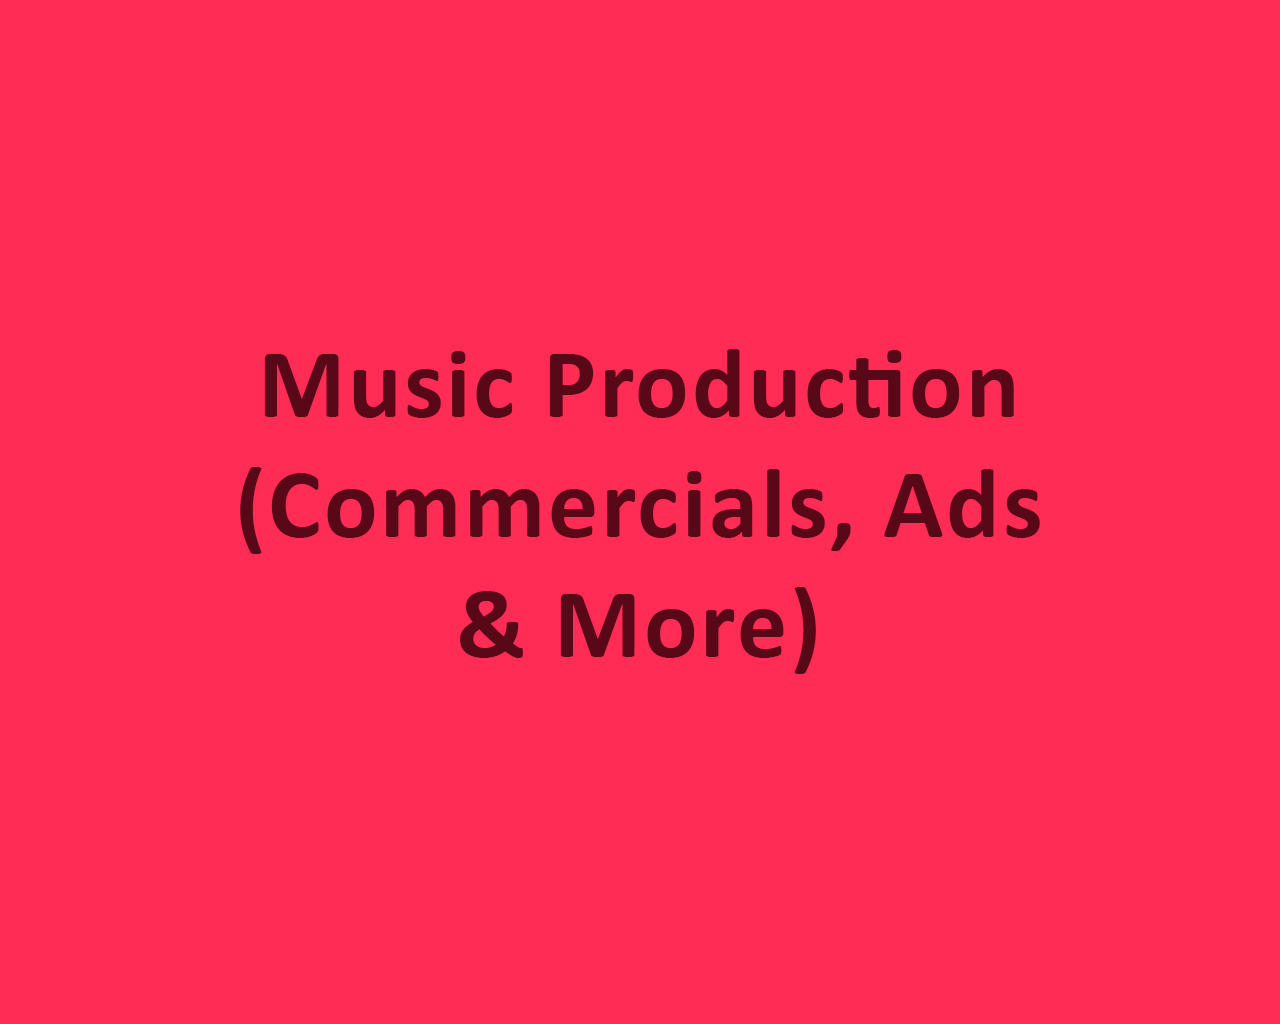 Music Production (Commercials, Ads & More) by odiusfly - 105983